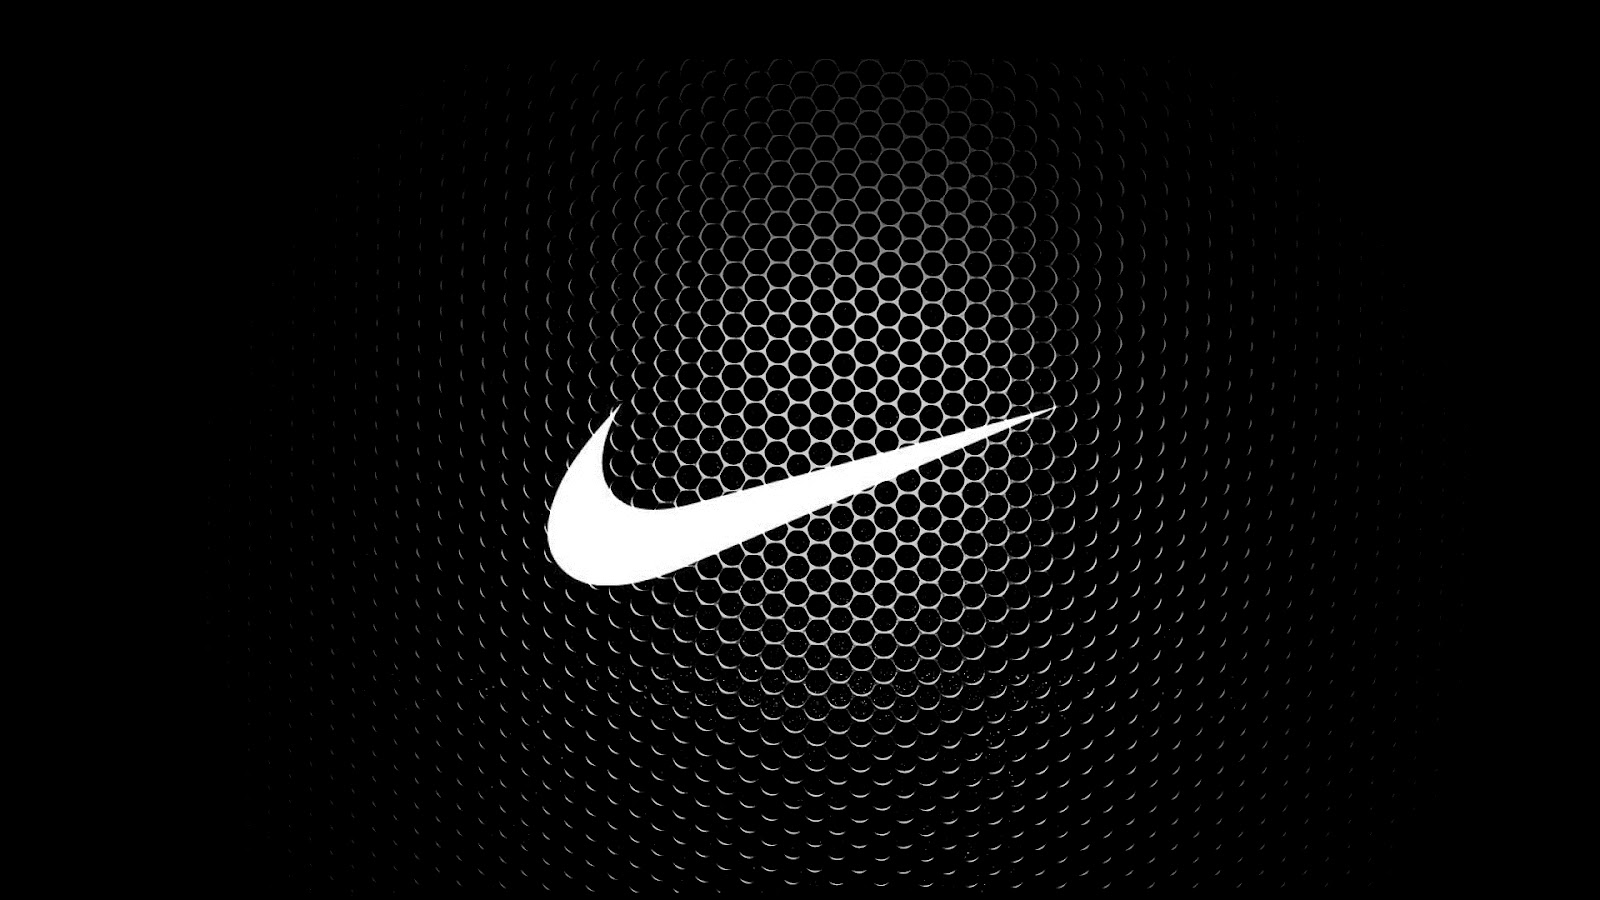 nike wallpaper hd 8160